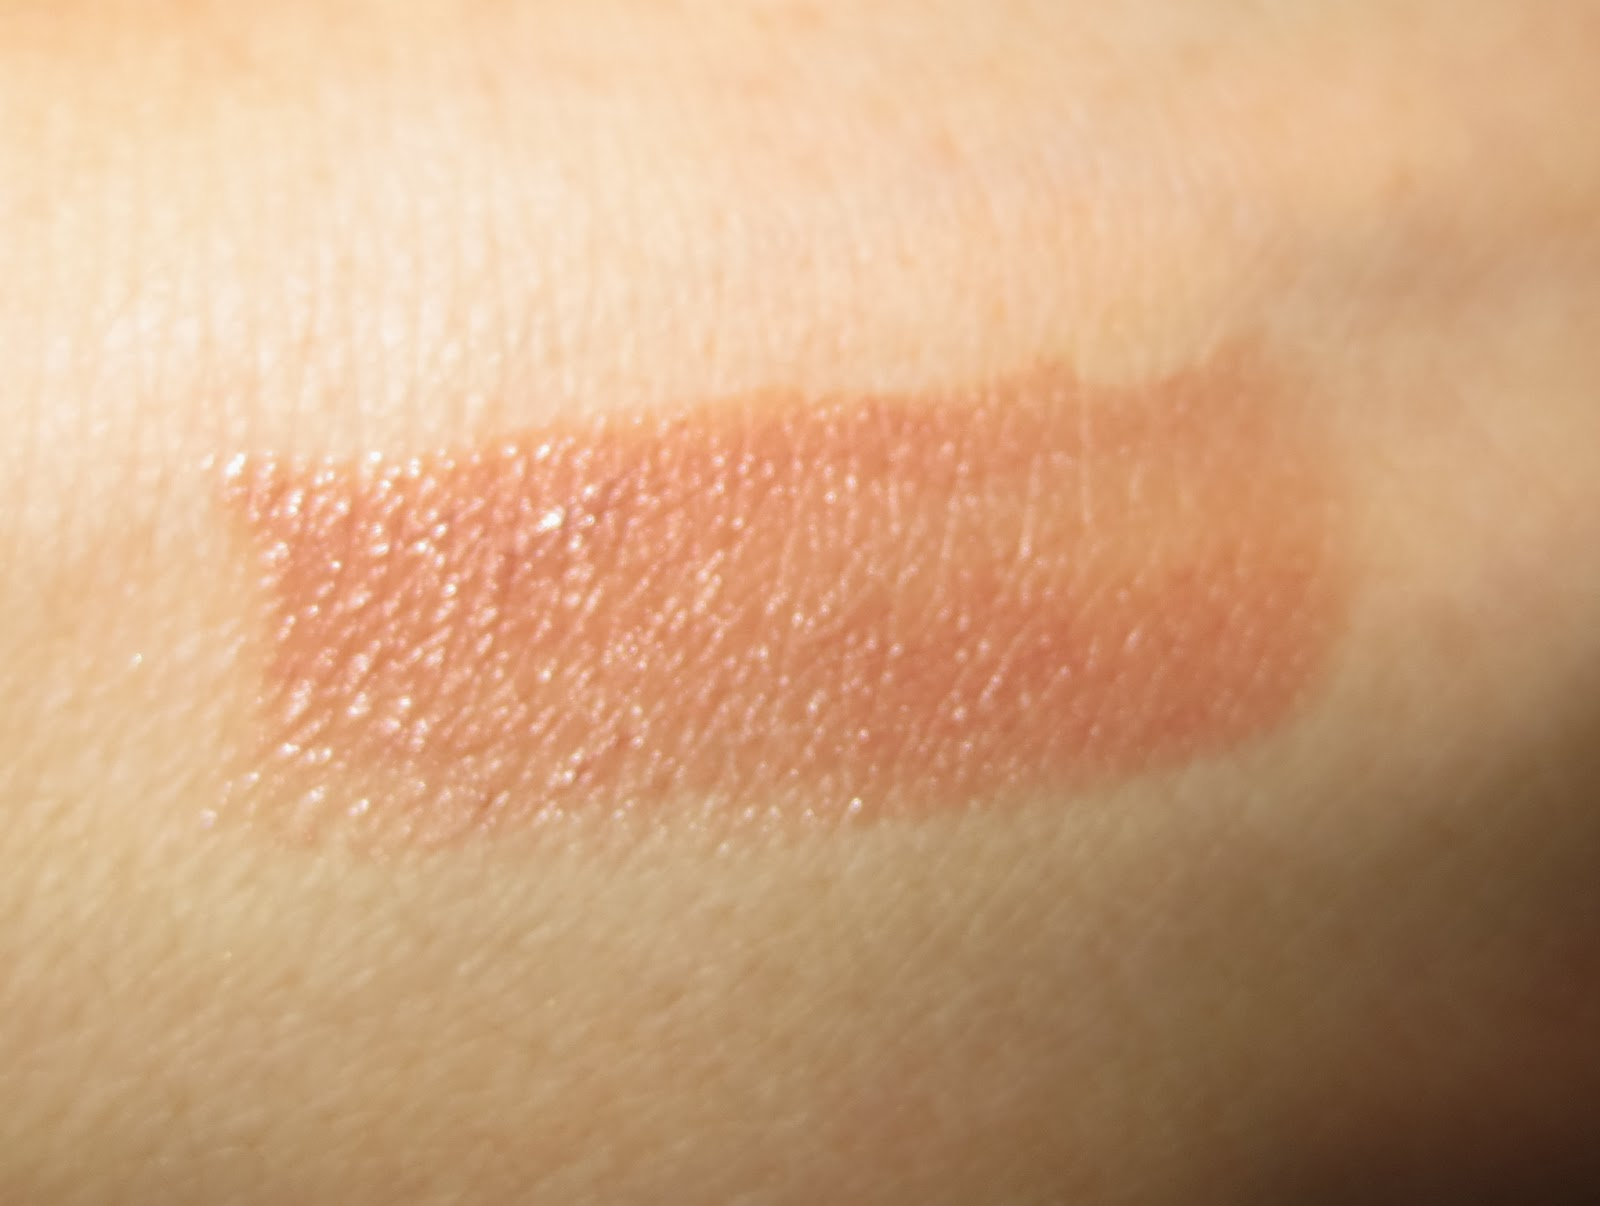 Maybelline Color Sensational The Buffs in Truffle Tease swatch